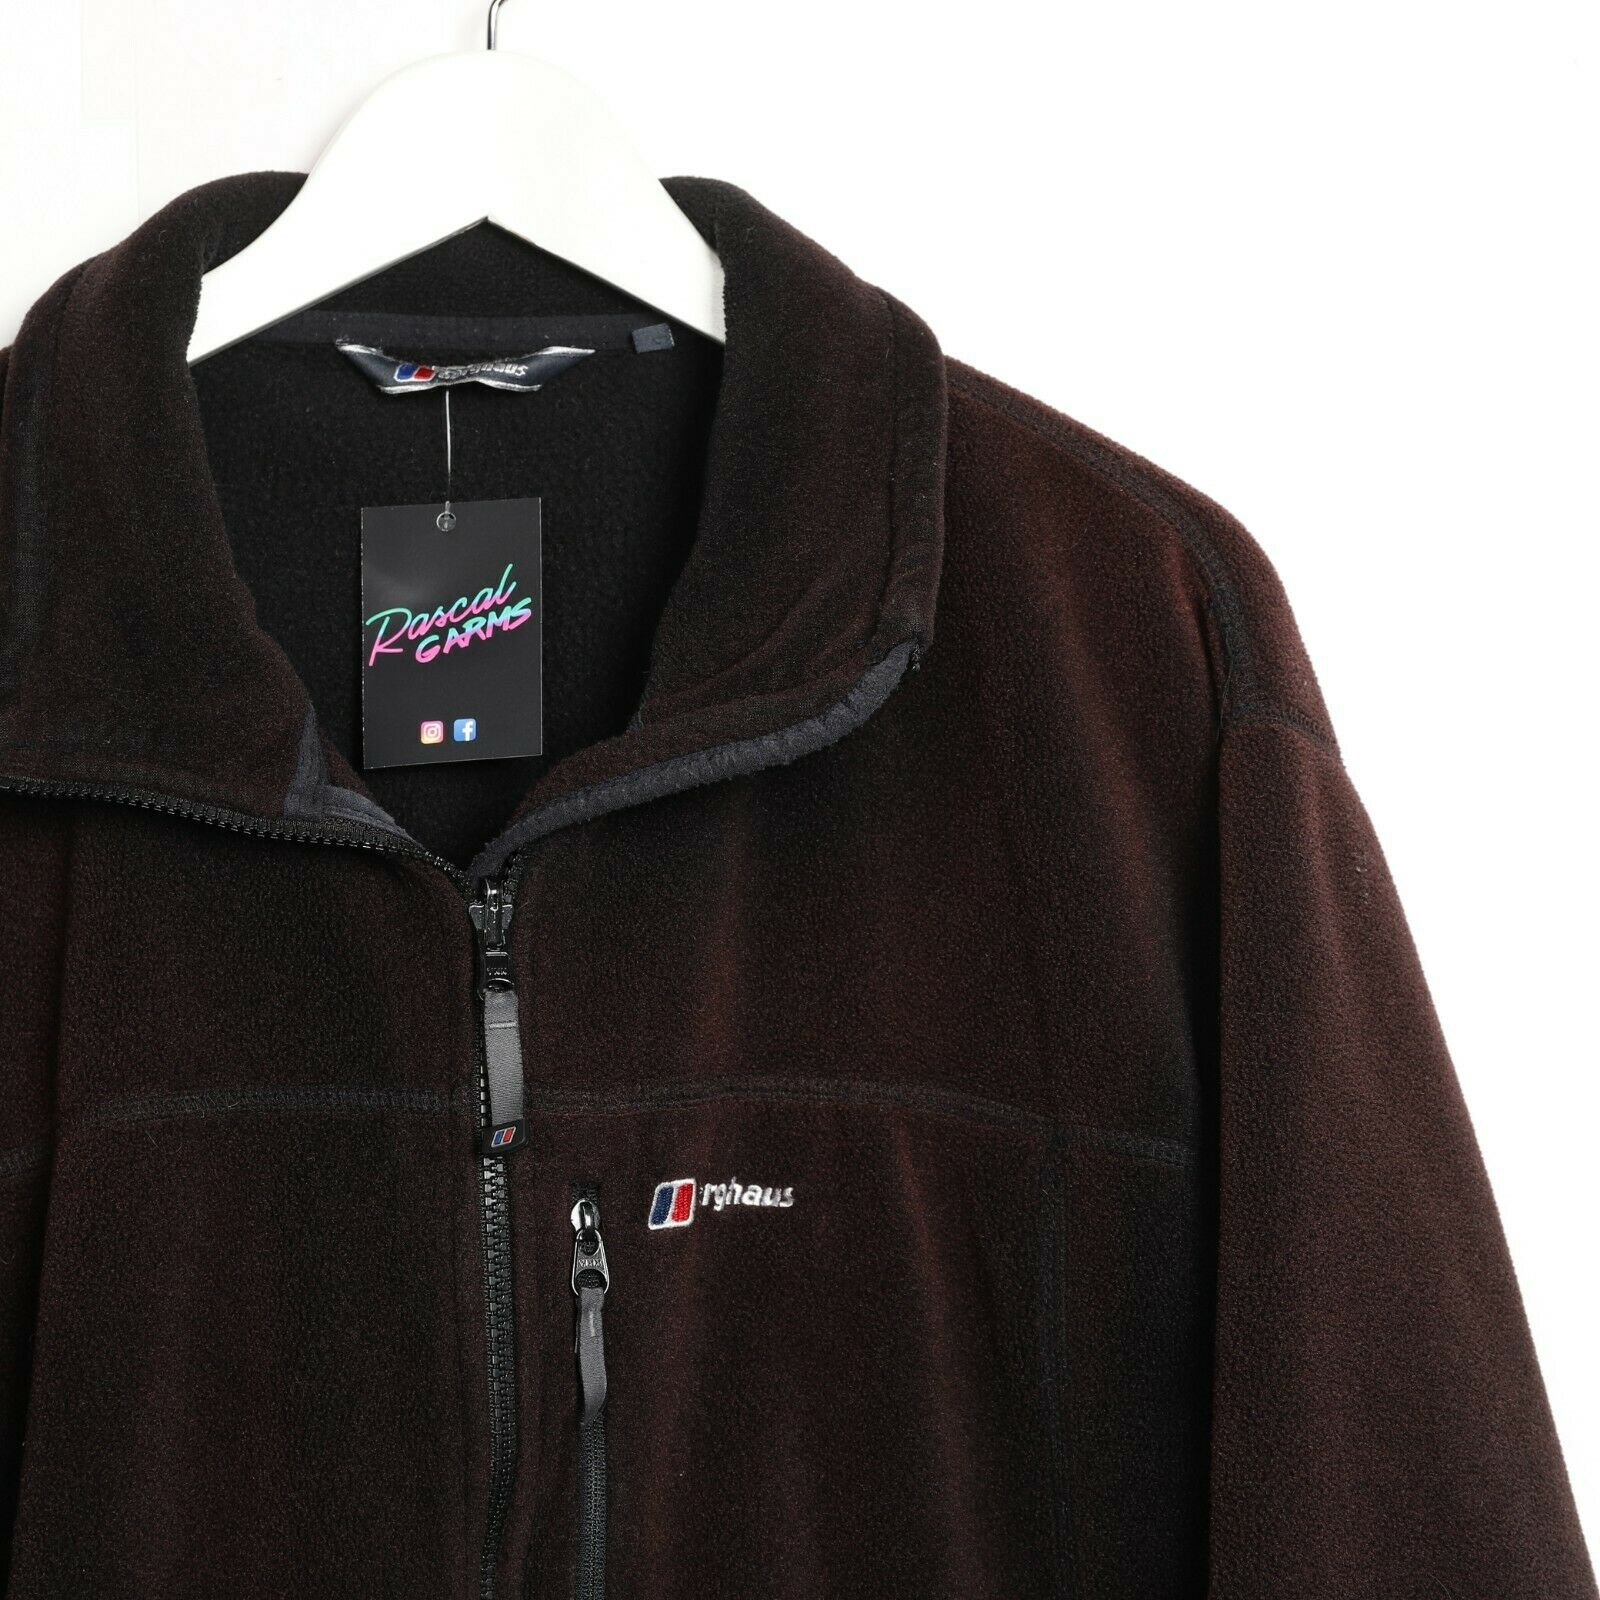 Vintage BERGHAUS Small Logo Zip Up Fleece Top Black Large L